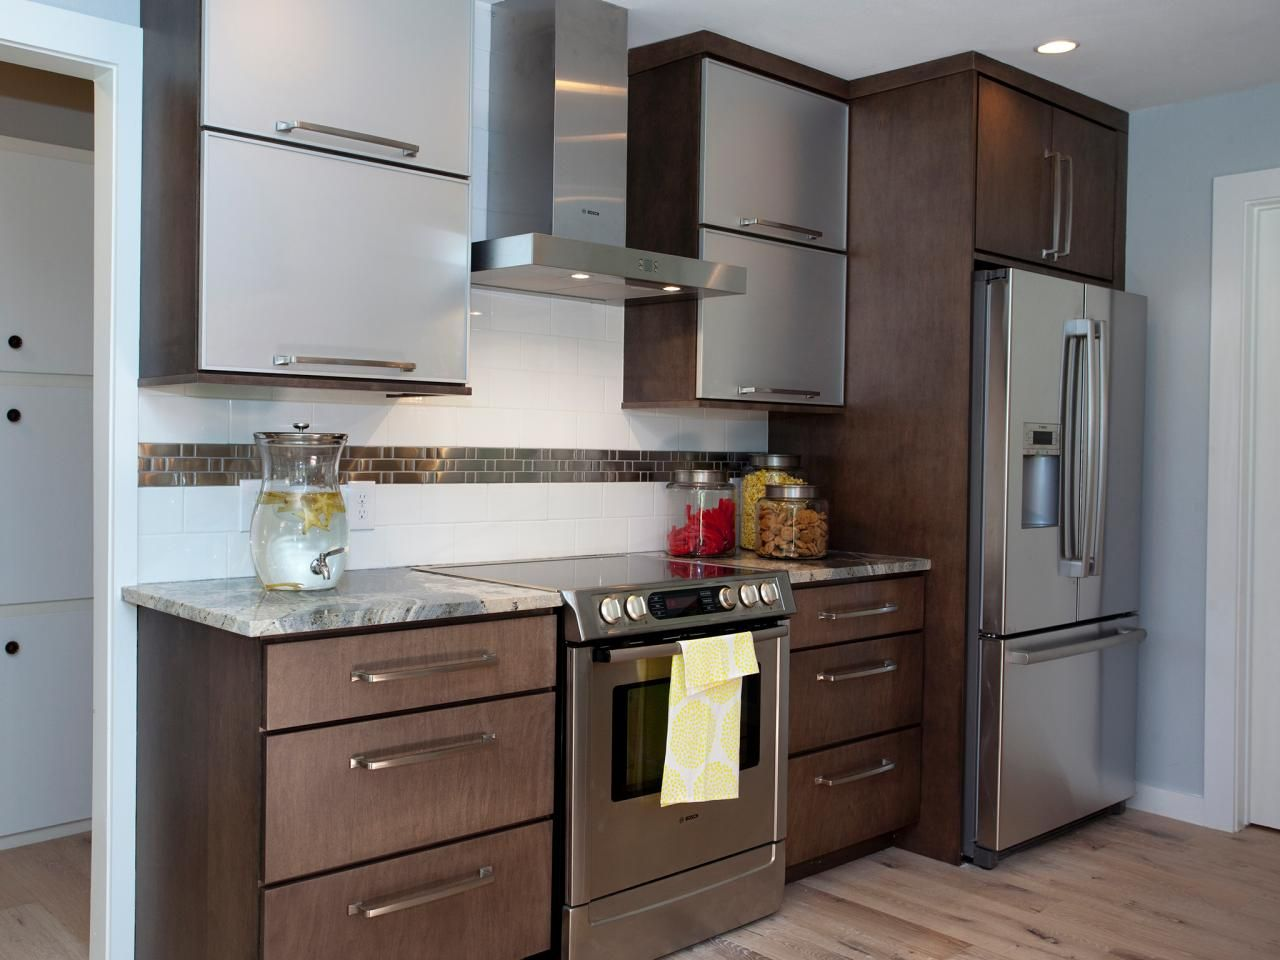 Small Kitchen Table Options Pictures Ideas From Hgtv Metal Kitchen Cabinets Outdoor Kitchen Cabinets Contemporary Kitchen